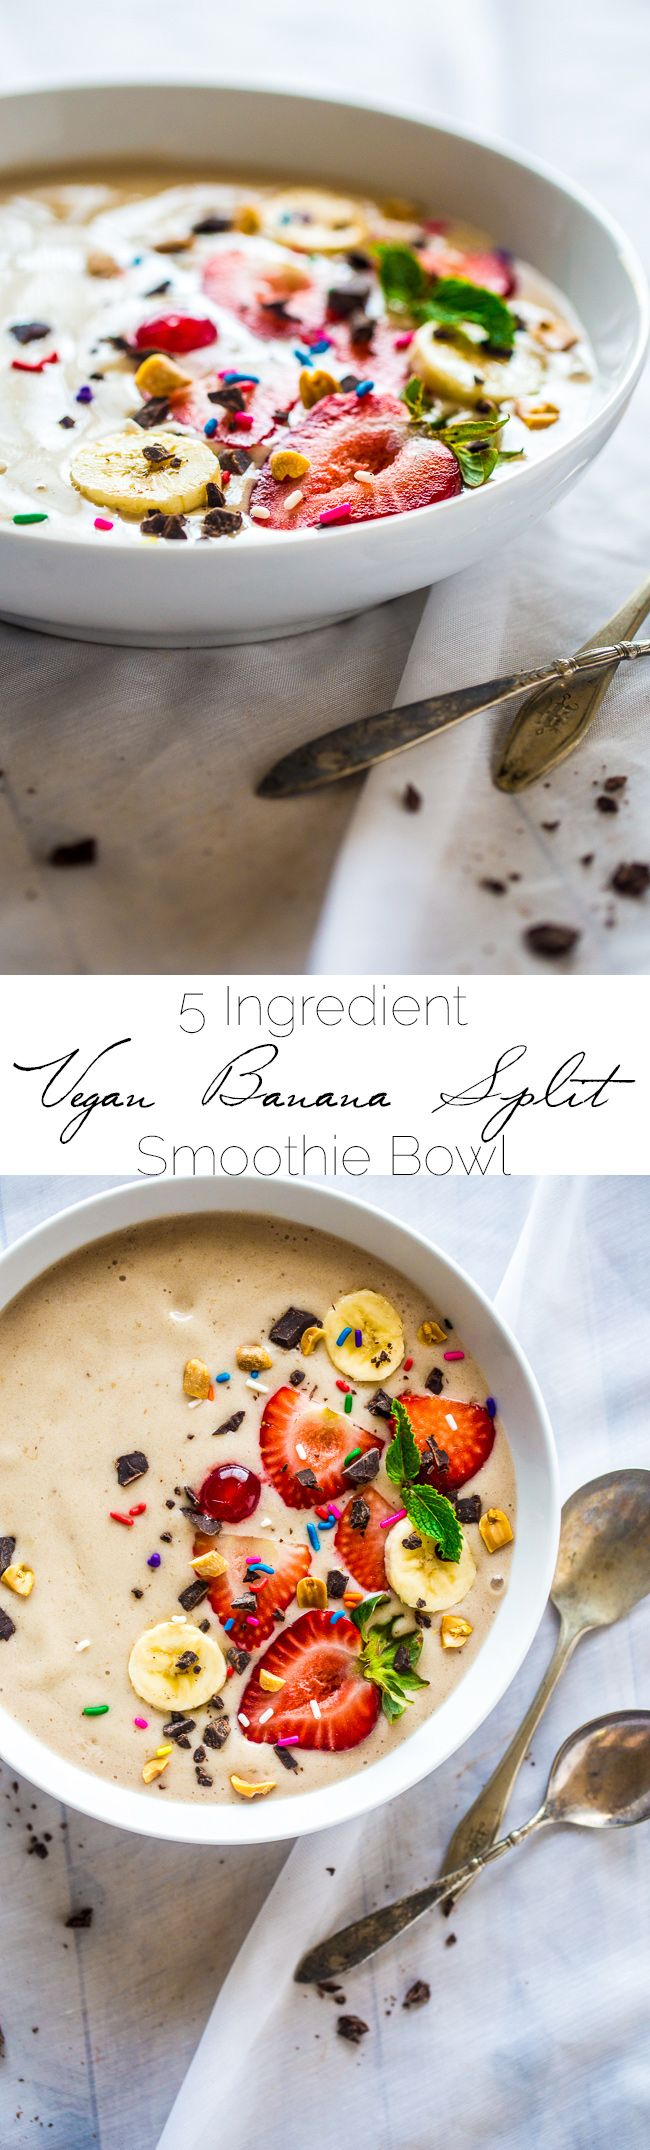 Banana Split Vegan Smoothie Bowl - Made with only 5 ingredients, ready in 5 minutes, tastes like a banana split, and is secretly healthy enough for breakfast! Paleo friendly and gluten free too!   Foodfaithfitness.com   @FoodFaithFit